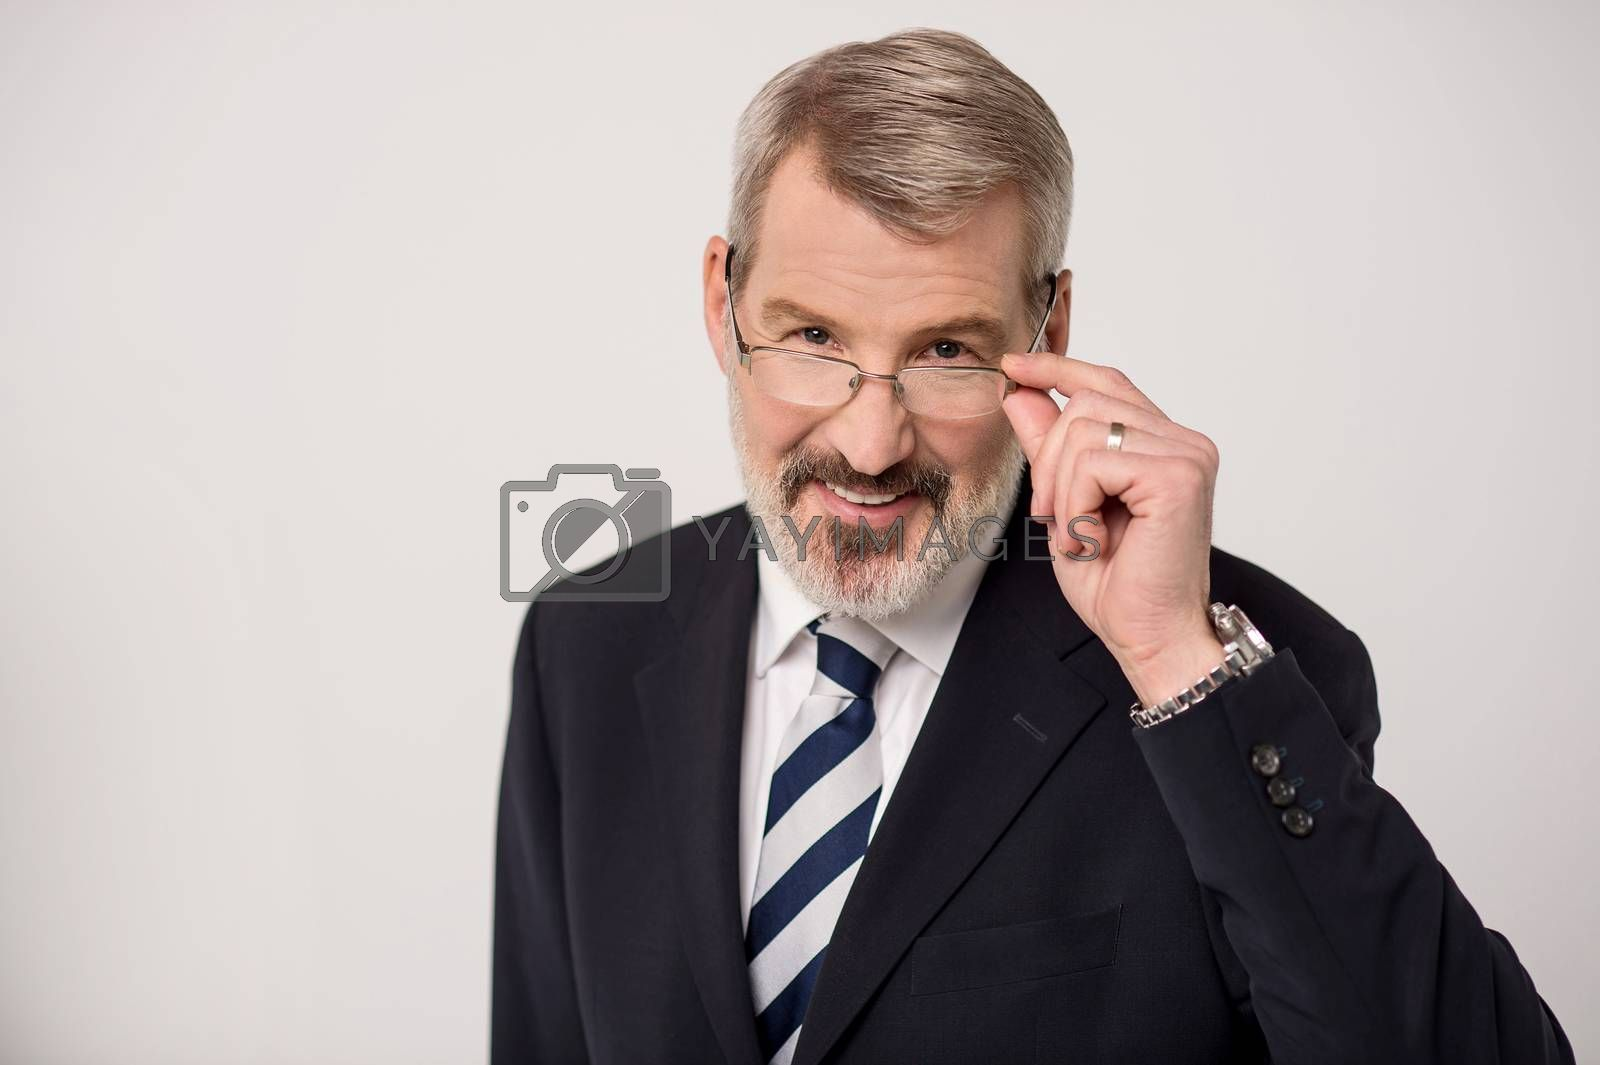 Senior businessman adjusting his glasses for clear view